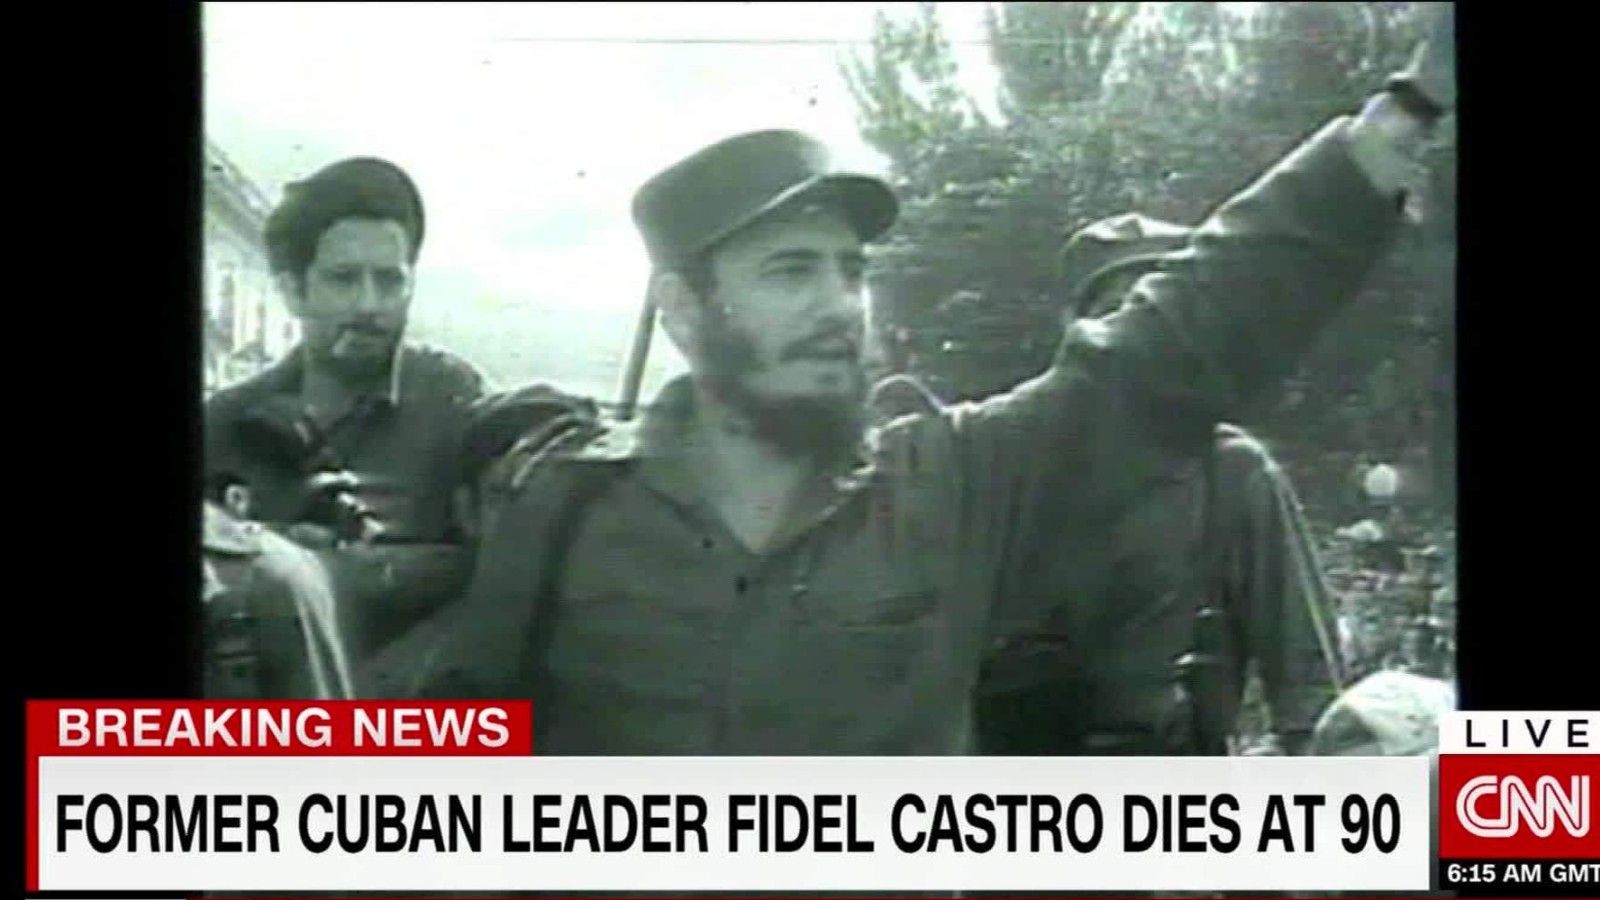 Cuban revolutionary icon Fidel Castro dies